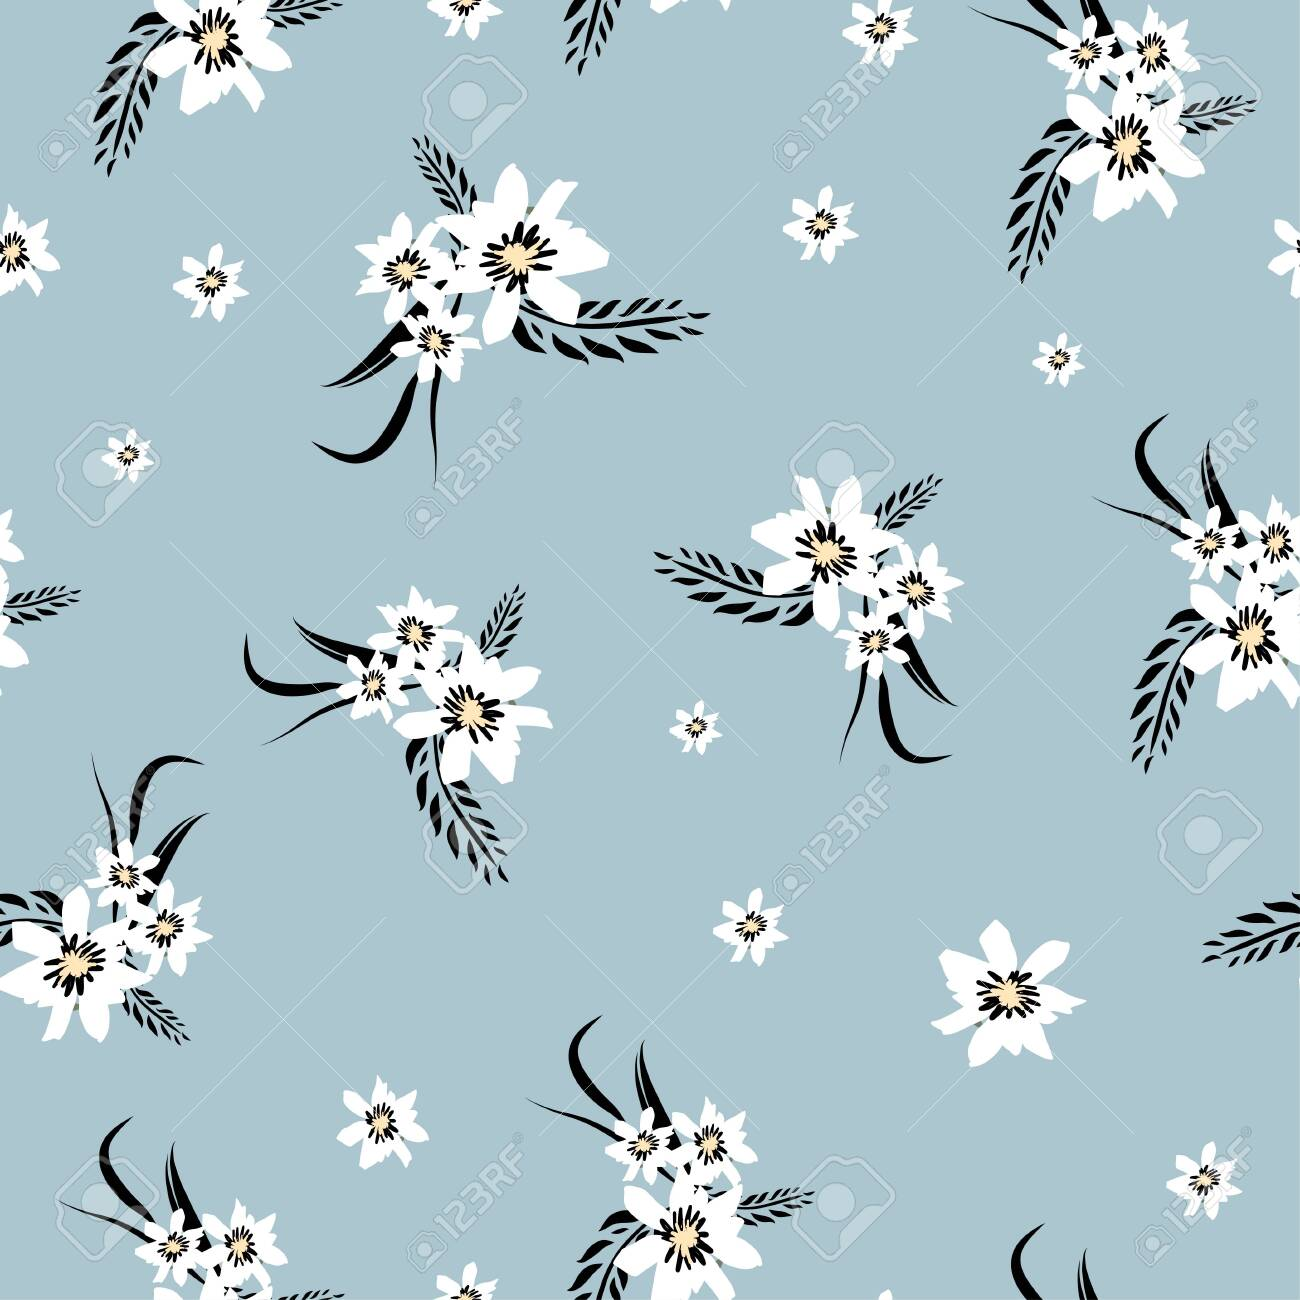 4 3dRose ct/_120214/_1 Delicate White Flowers on Pale Blue Shabby Chic Vintage Floral Pattern Pastel Pretty Victorian Ceramic Tile